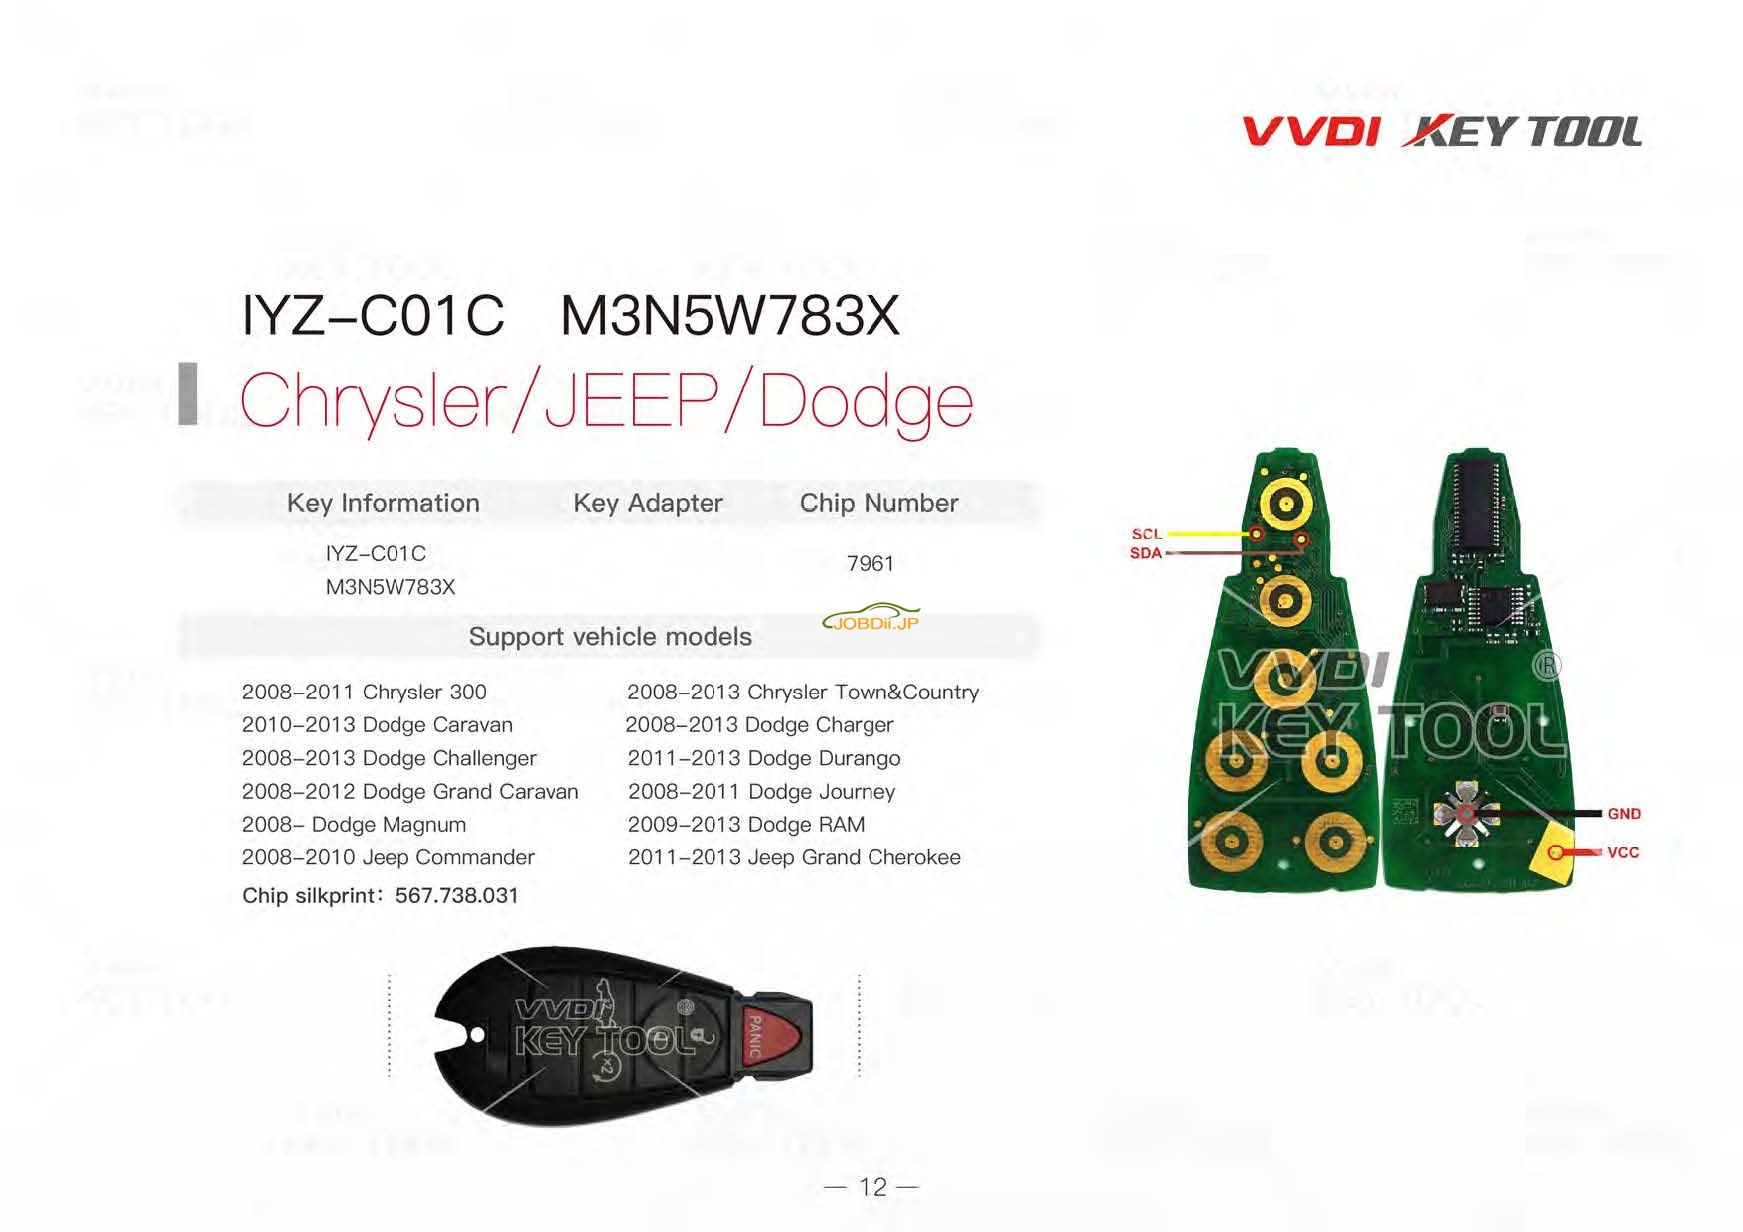 vvdi-key-tool-renew-diagram-12